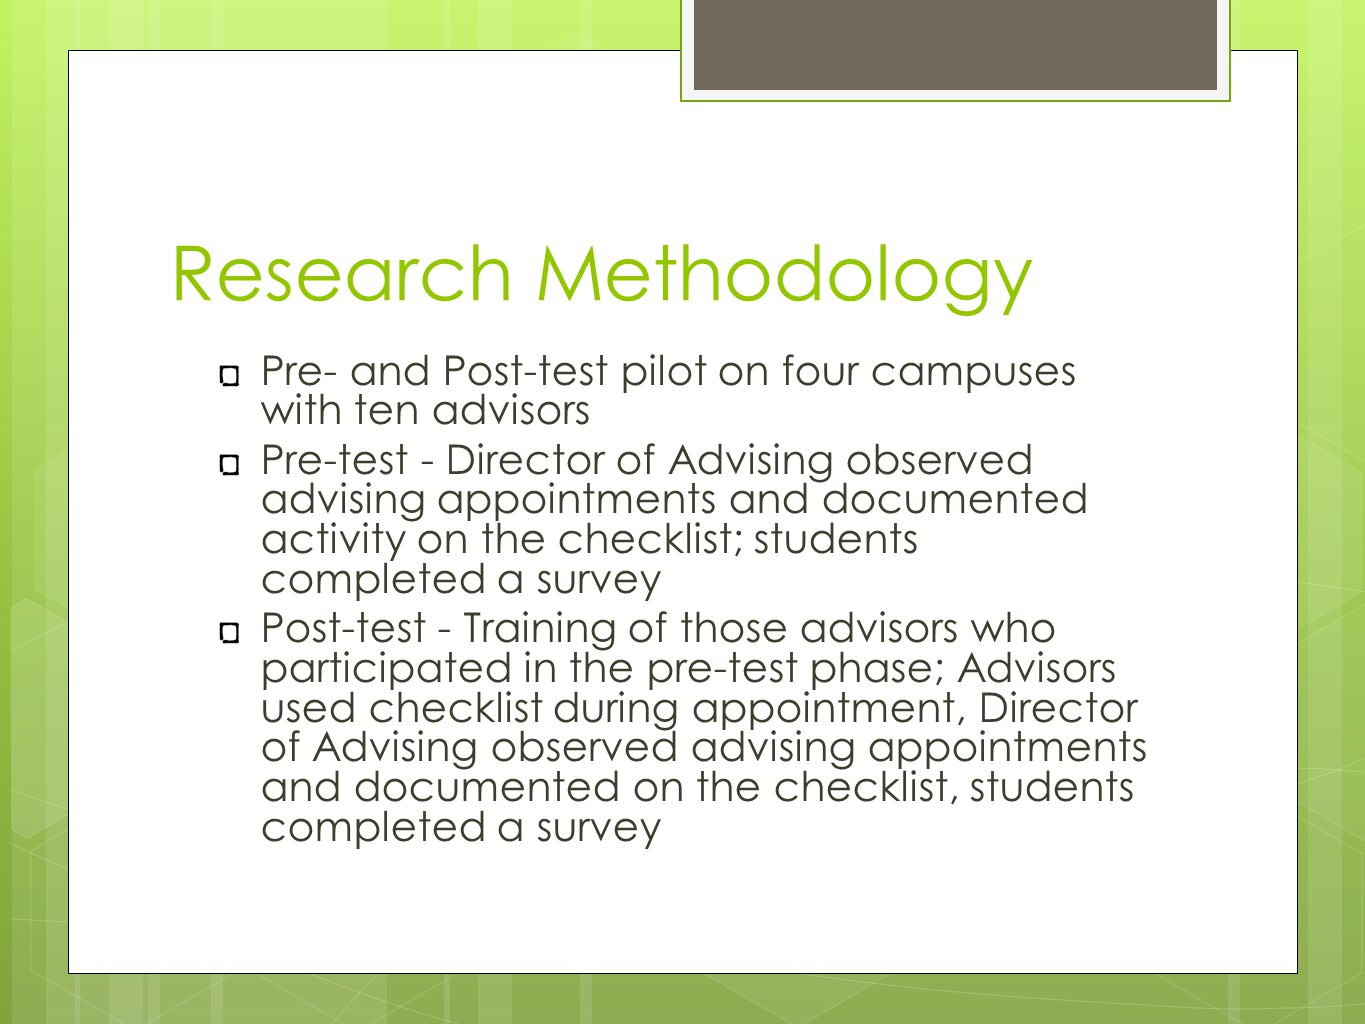 Research Methodology Pre- and Post-test pilot on four campuses with ten advisors Pre-test - Director of Advising observed advising appointments and documented activity on the checklist; students completed a survey Post-test - Training of those advisors who participated in the pre-test phase; Advisors used checklist during appointment, Director of Advising observed advising appointments and documented on the checklist, students completed a survey